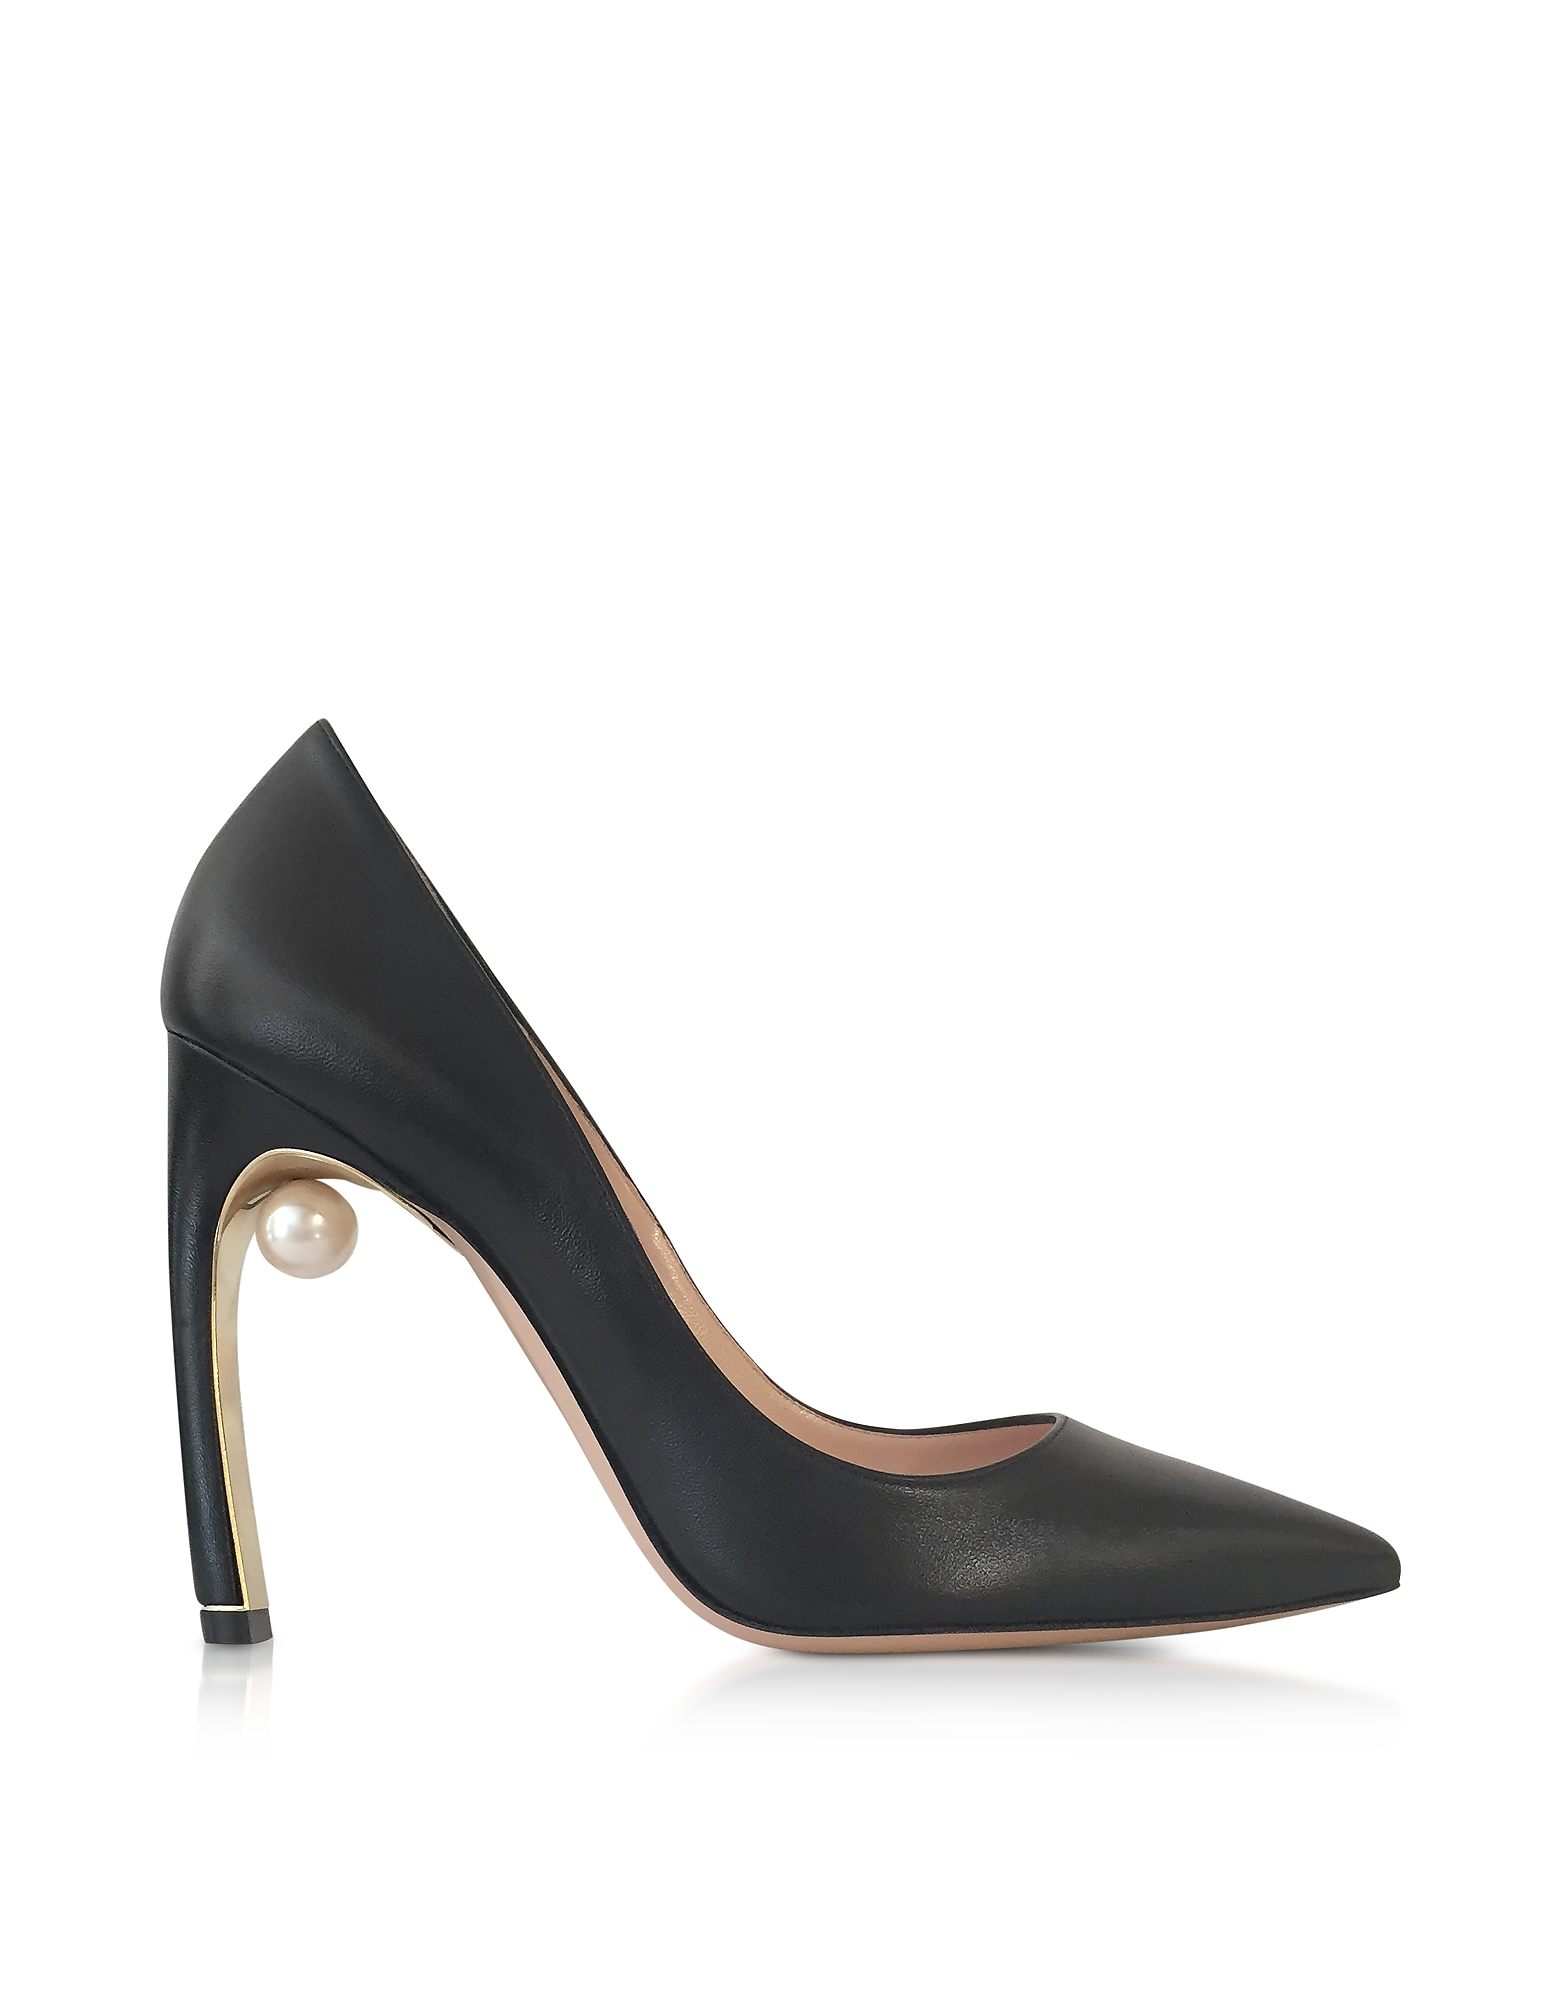 Nicholas Kirkwood Shoes, Black Nappa leather Mira Pearl Pumps